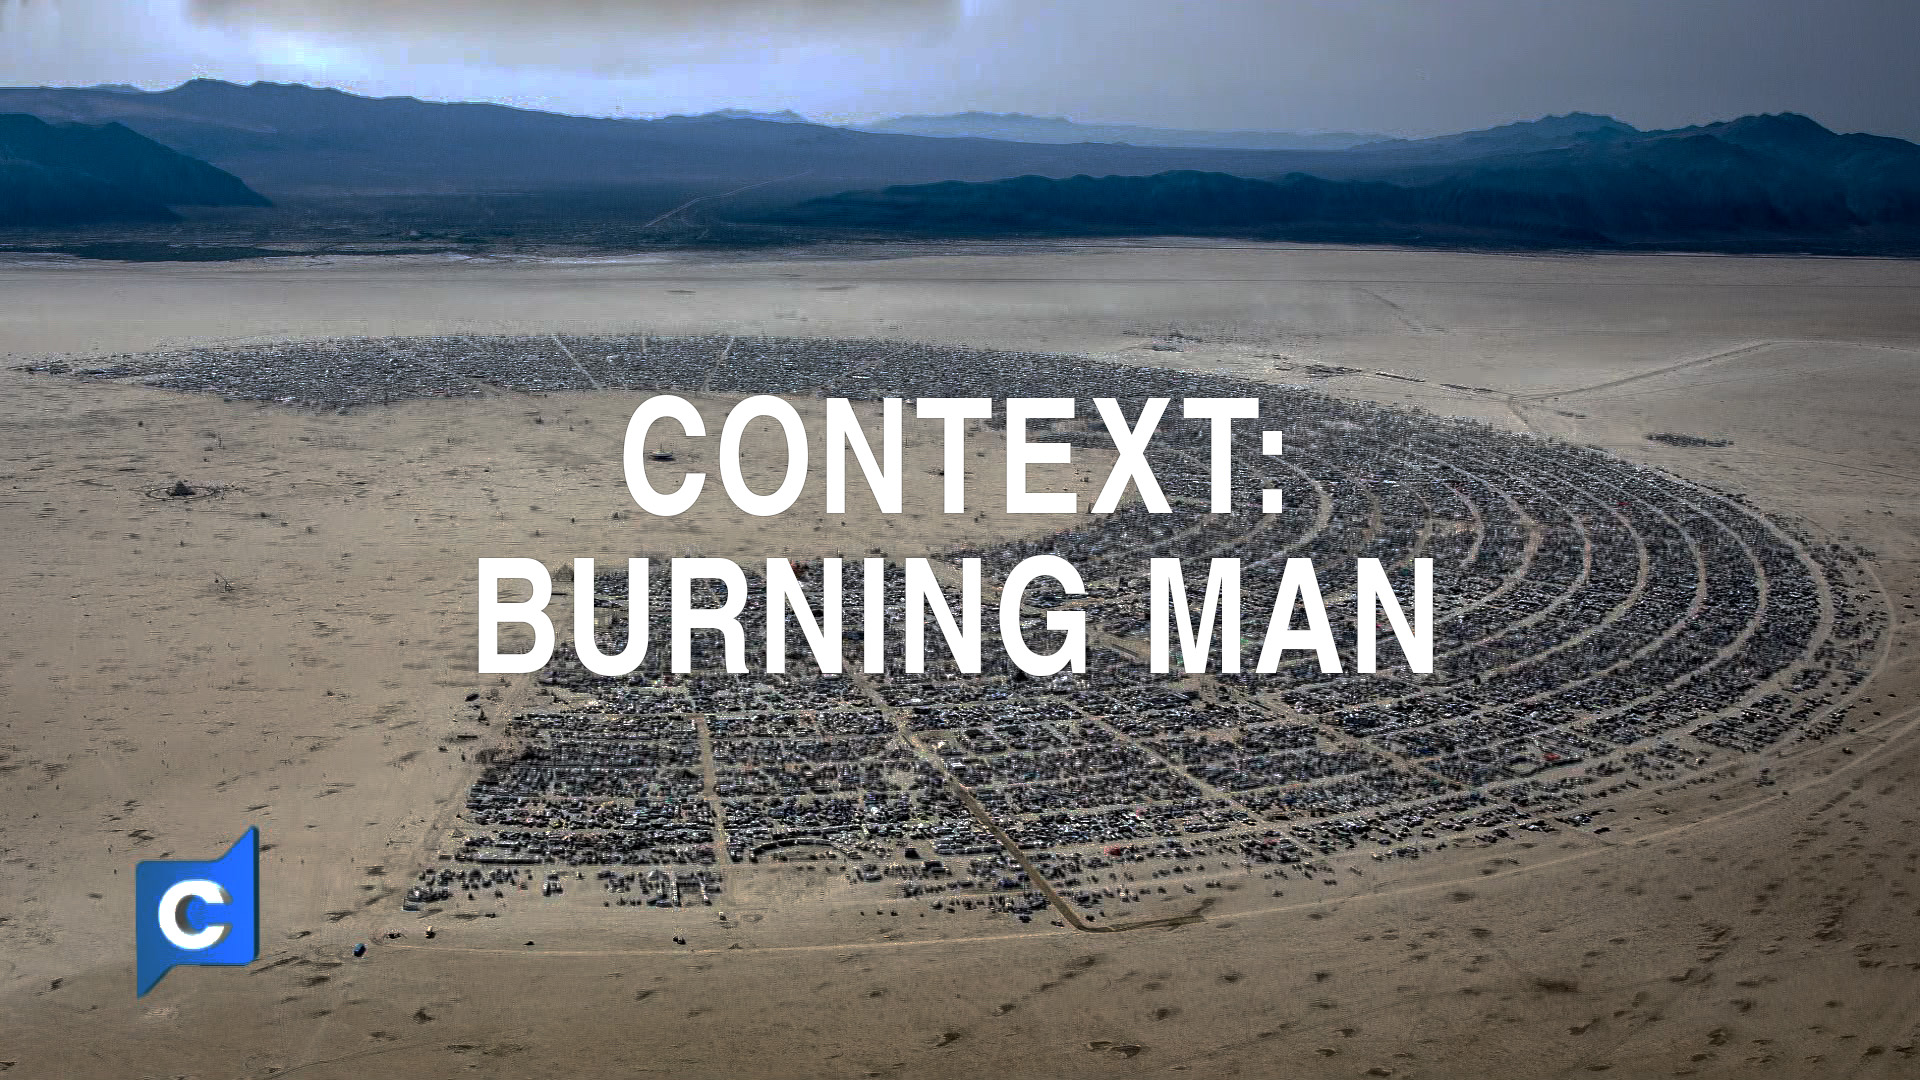 CONTEXT - BURNING MAN